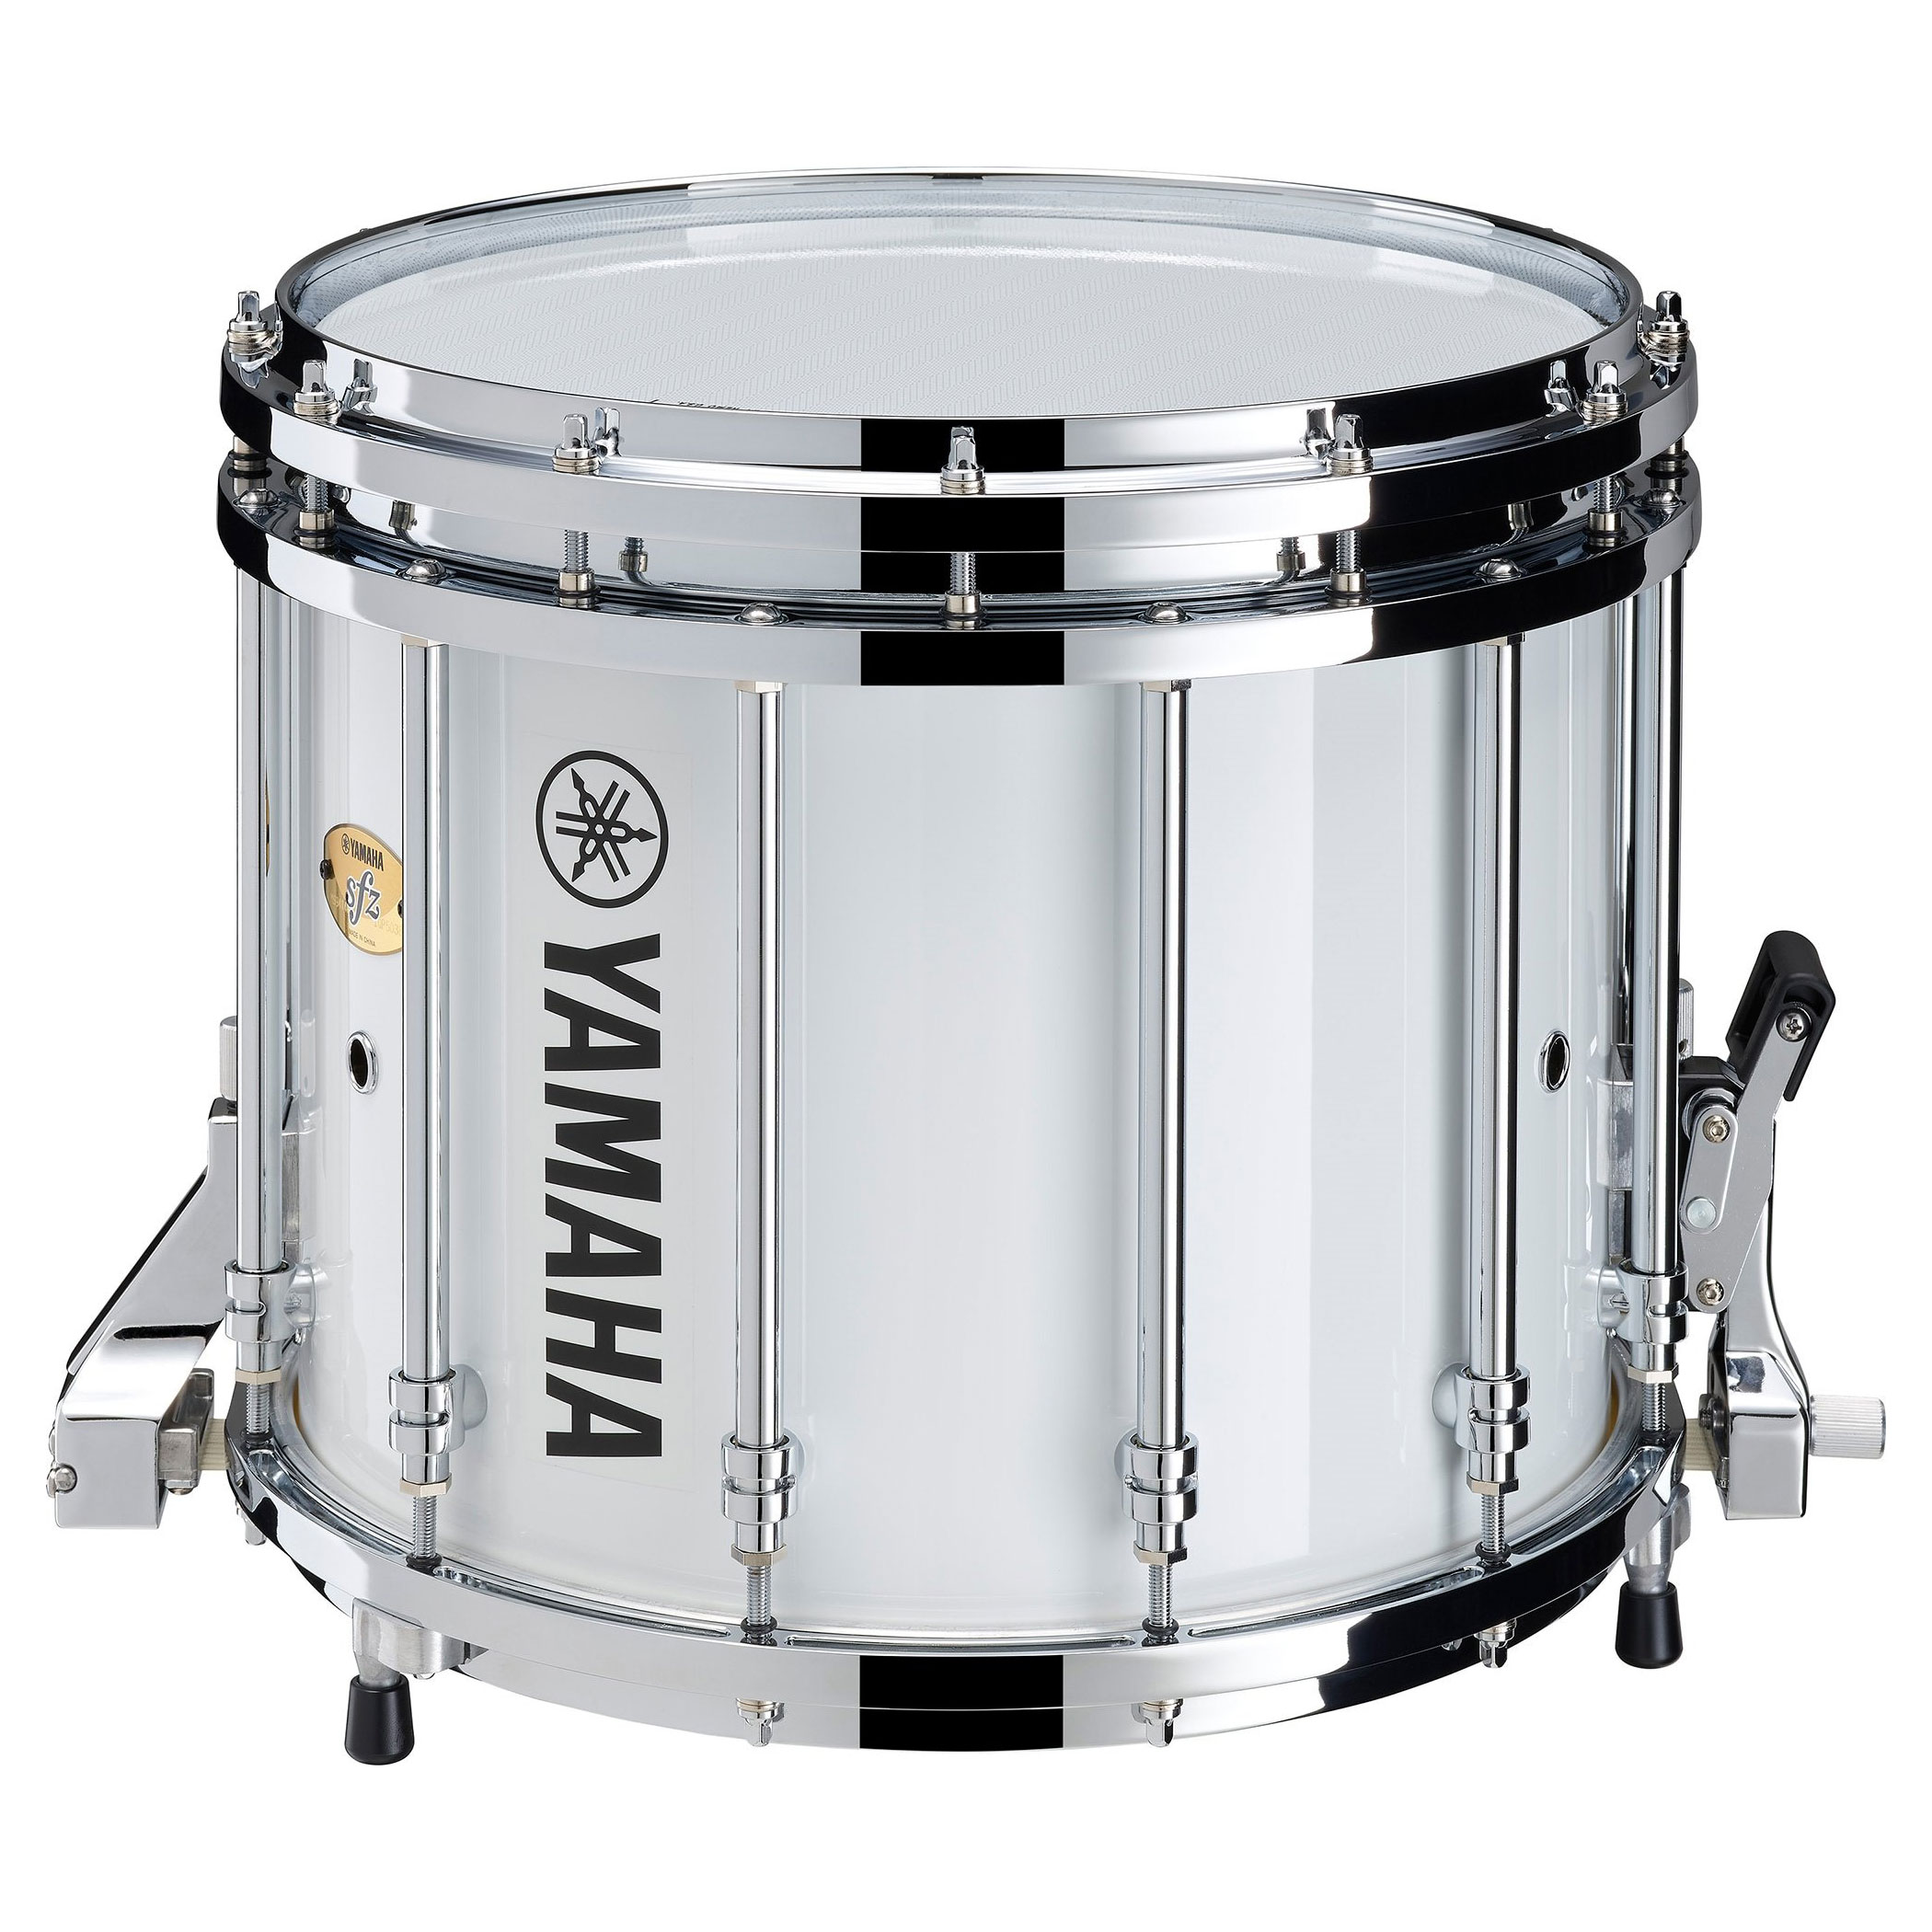 """Yamaha 14"""" x 12"""" 9400 Series SFZ Marching Snare Drum with Chrome Hardware"""